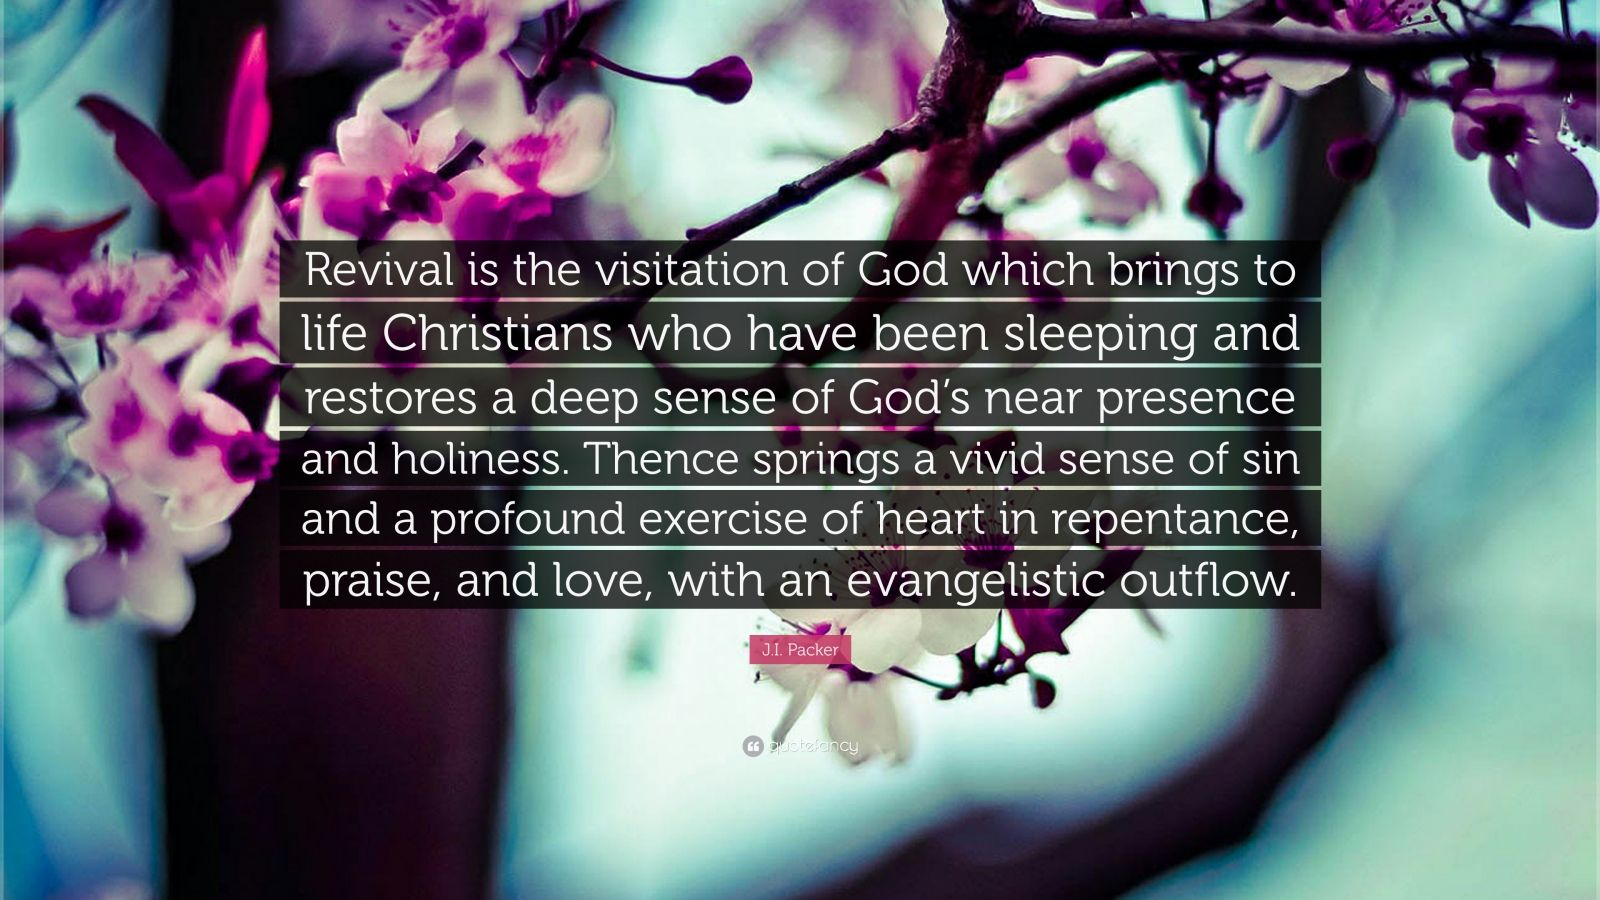 """J.I. Packer Quote: """"Revival is the visitation of God which brings to life Christians who have been sleeping and restores a deep sense of God's near presence and holiness. Thence springs a vivid sense of sin and a profound exercise of heart in repentance, praise, and love, with an evangelistic outflow."""""""